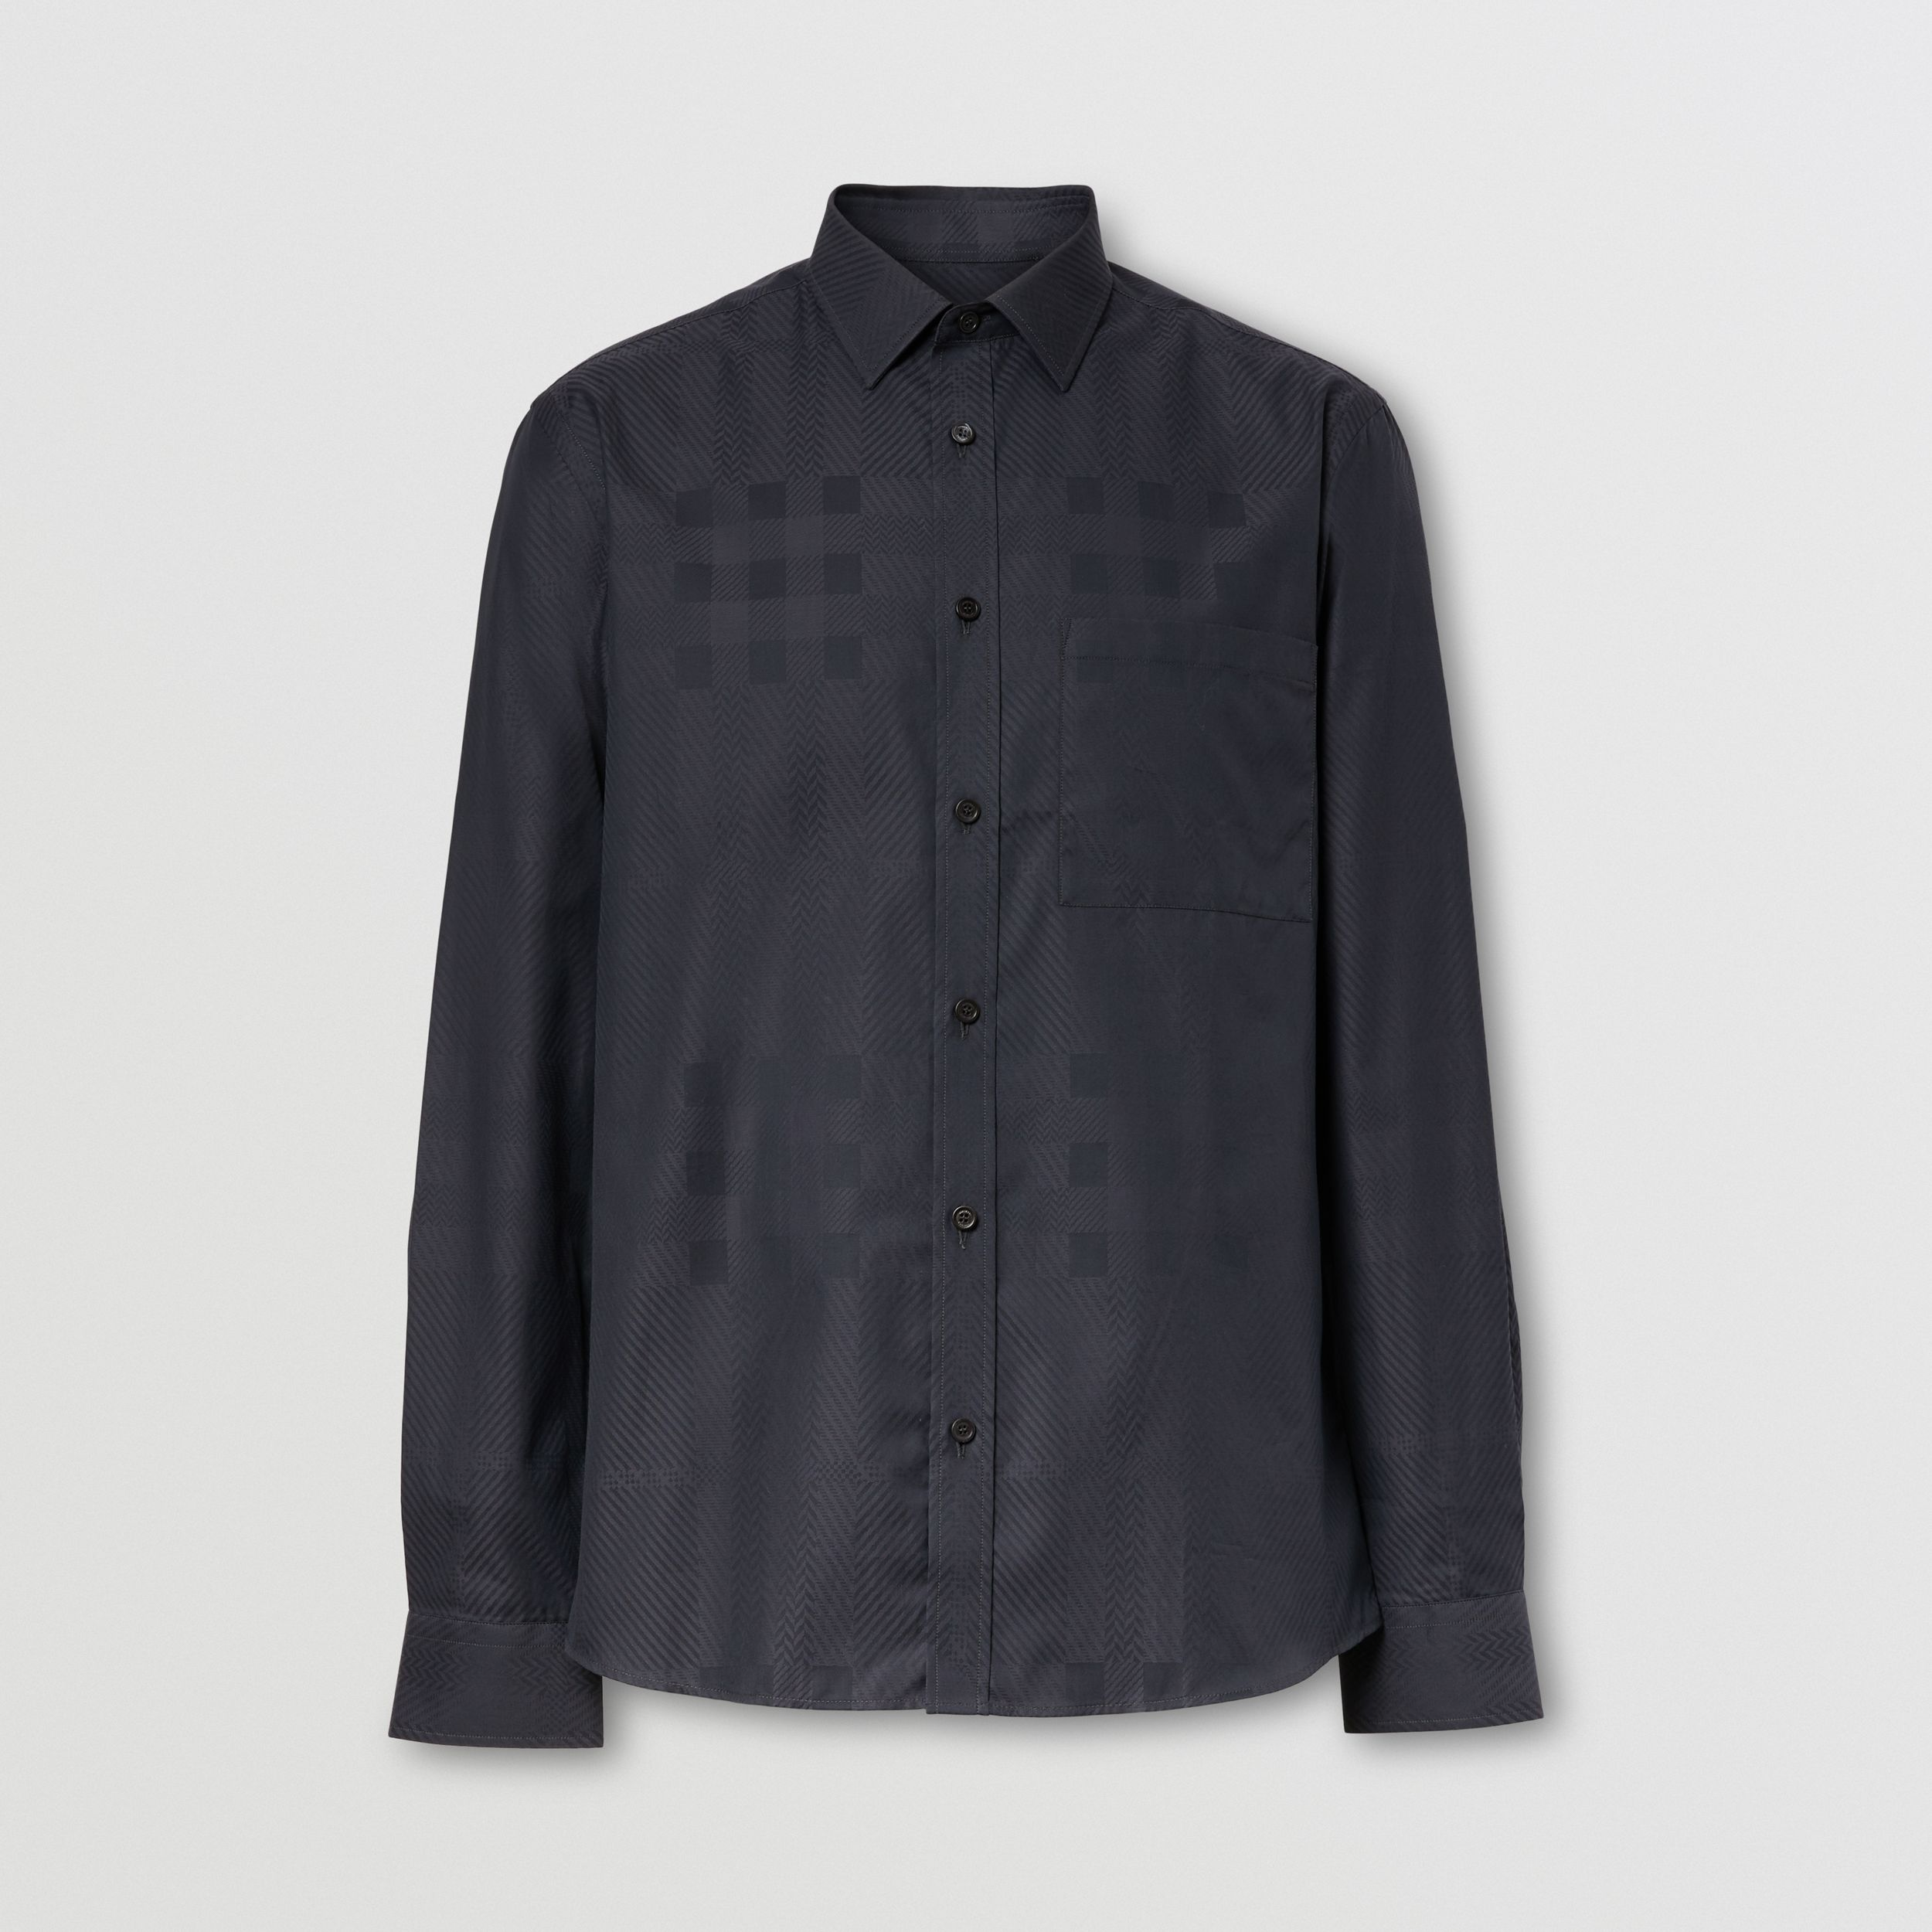 Slim Fit Check Cotton Jacquard Shirt in Charcoal - Men | Burberry - 4